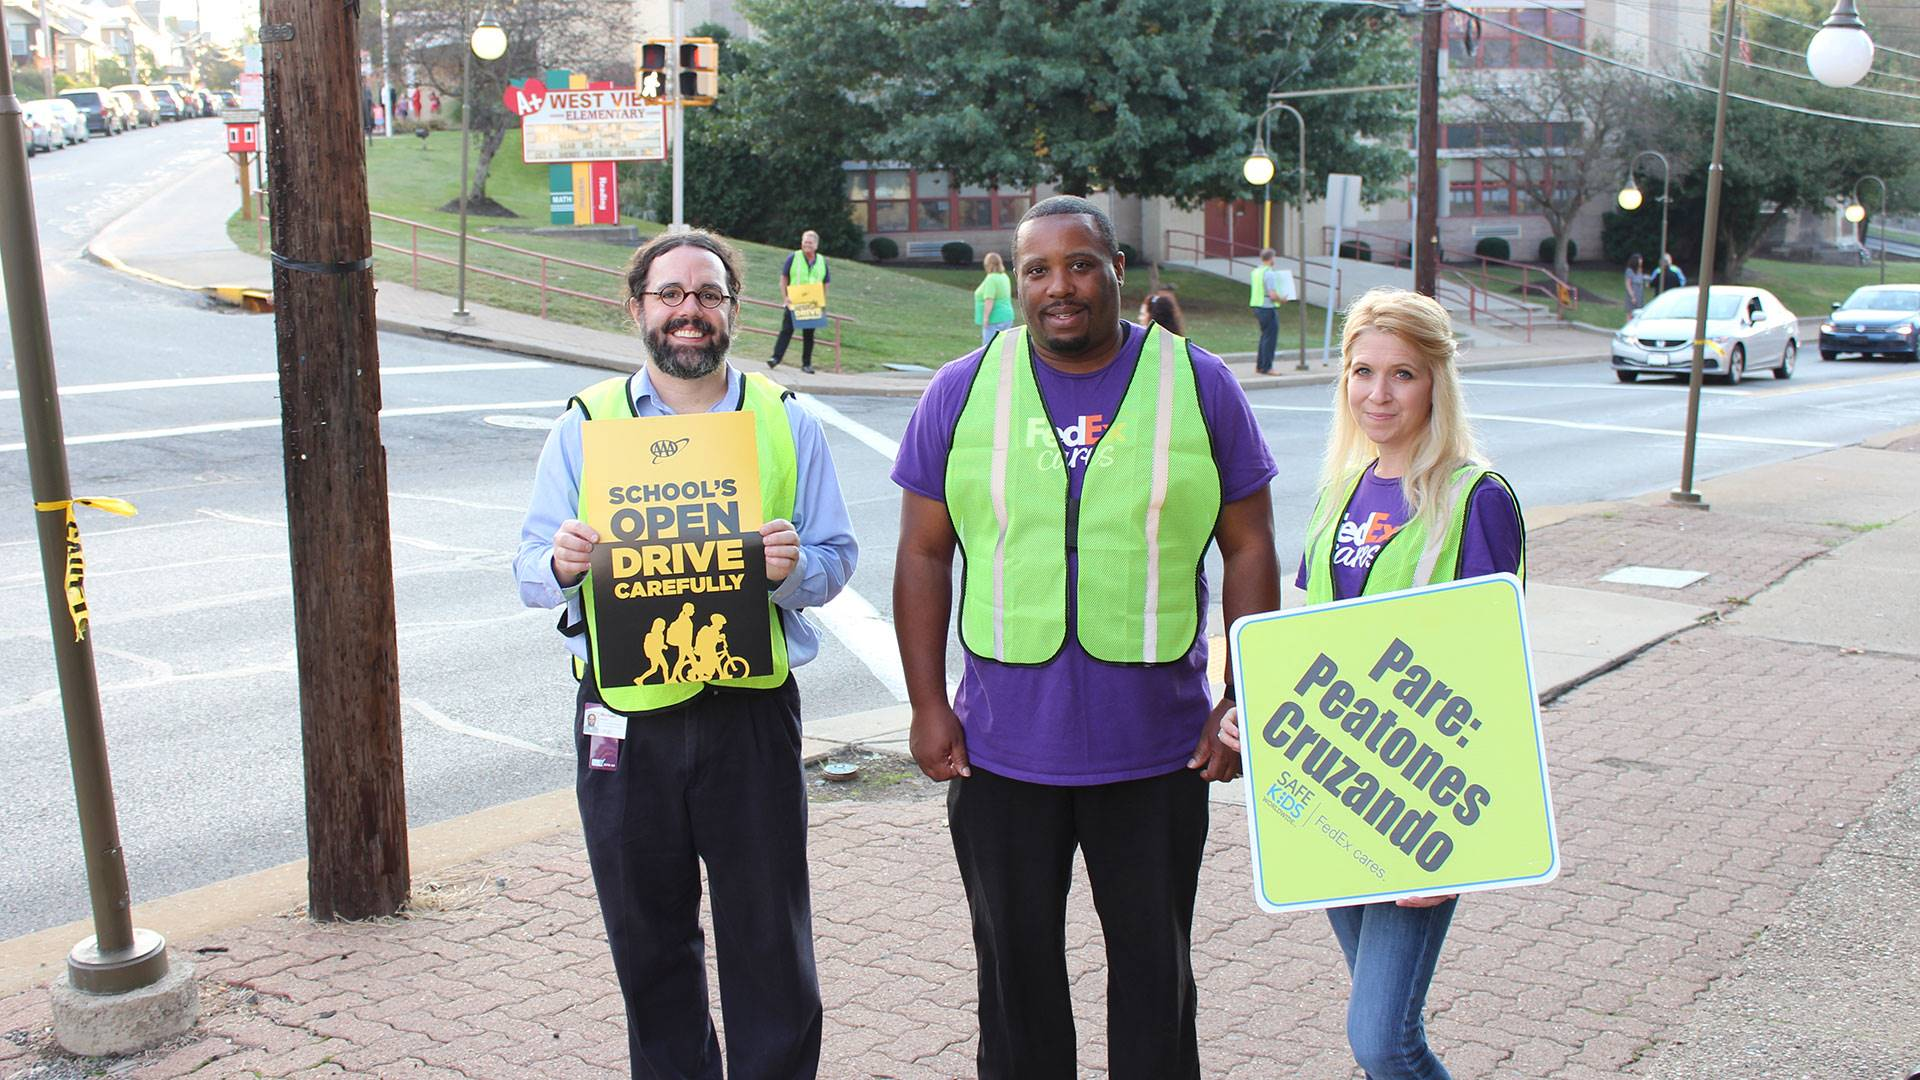 FedEx employees help keeps students safe on International Walk to School Day